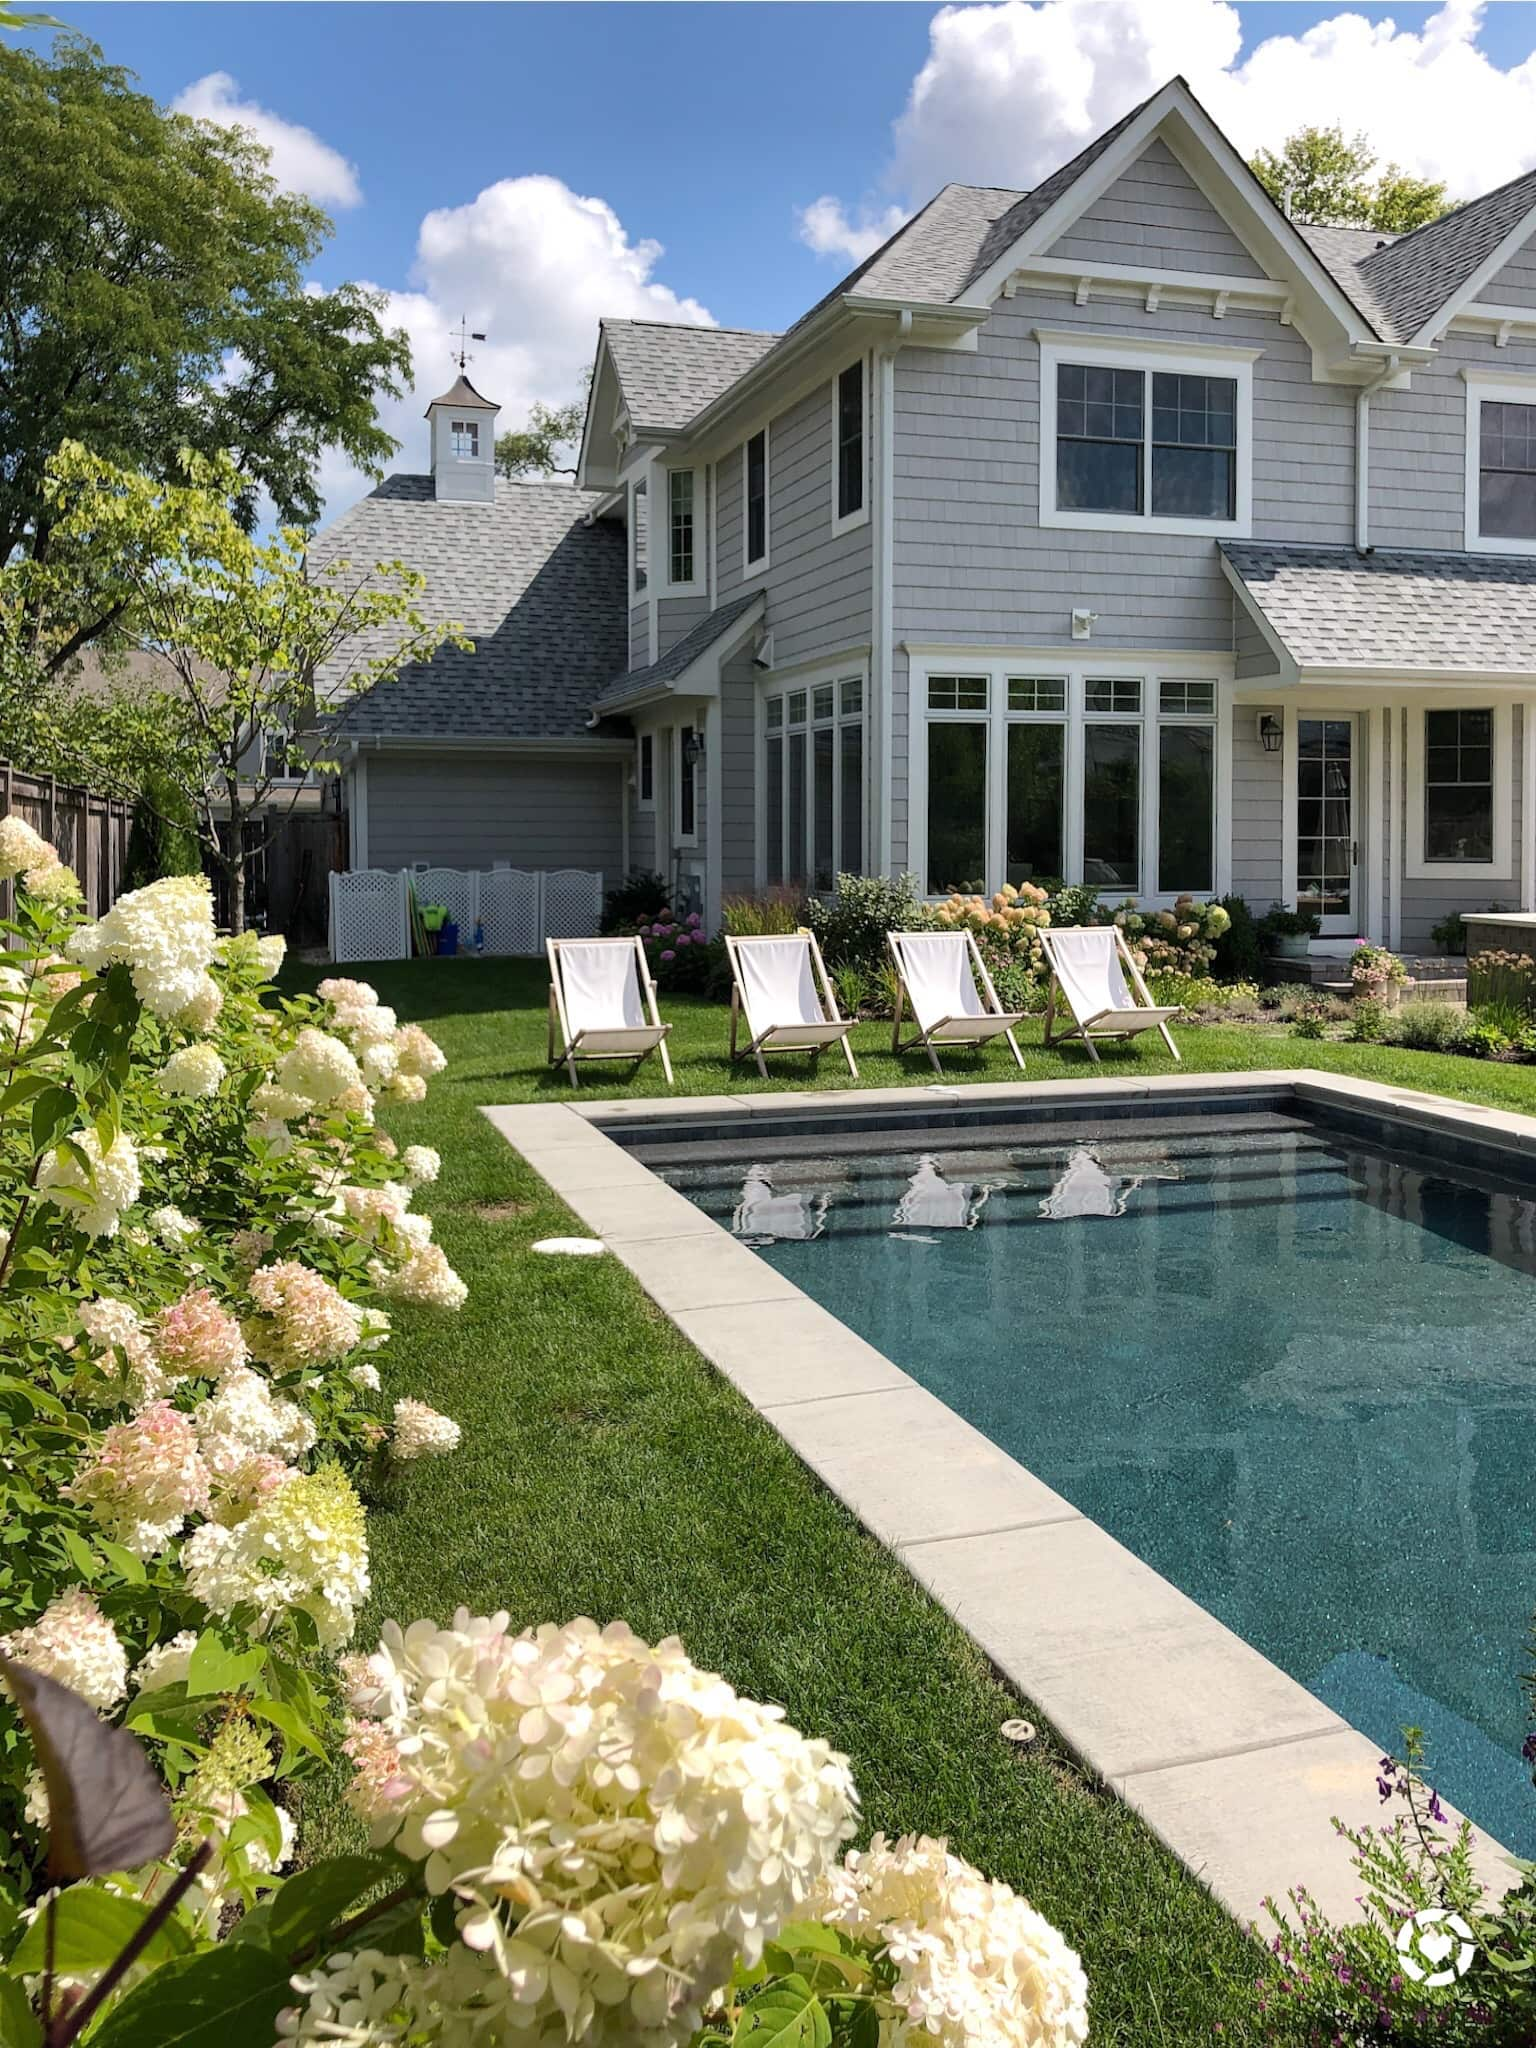 backyard with chairs, flowers and pool